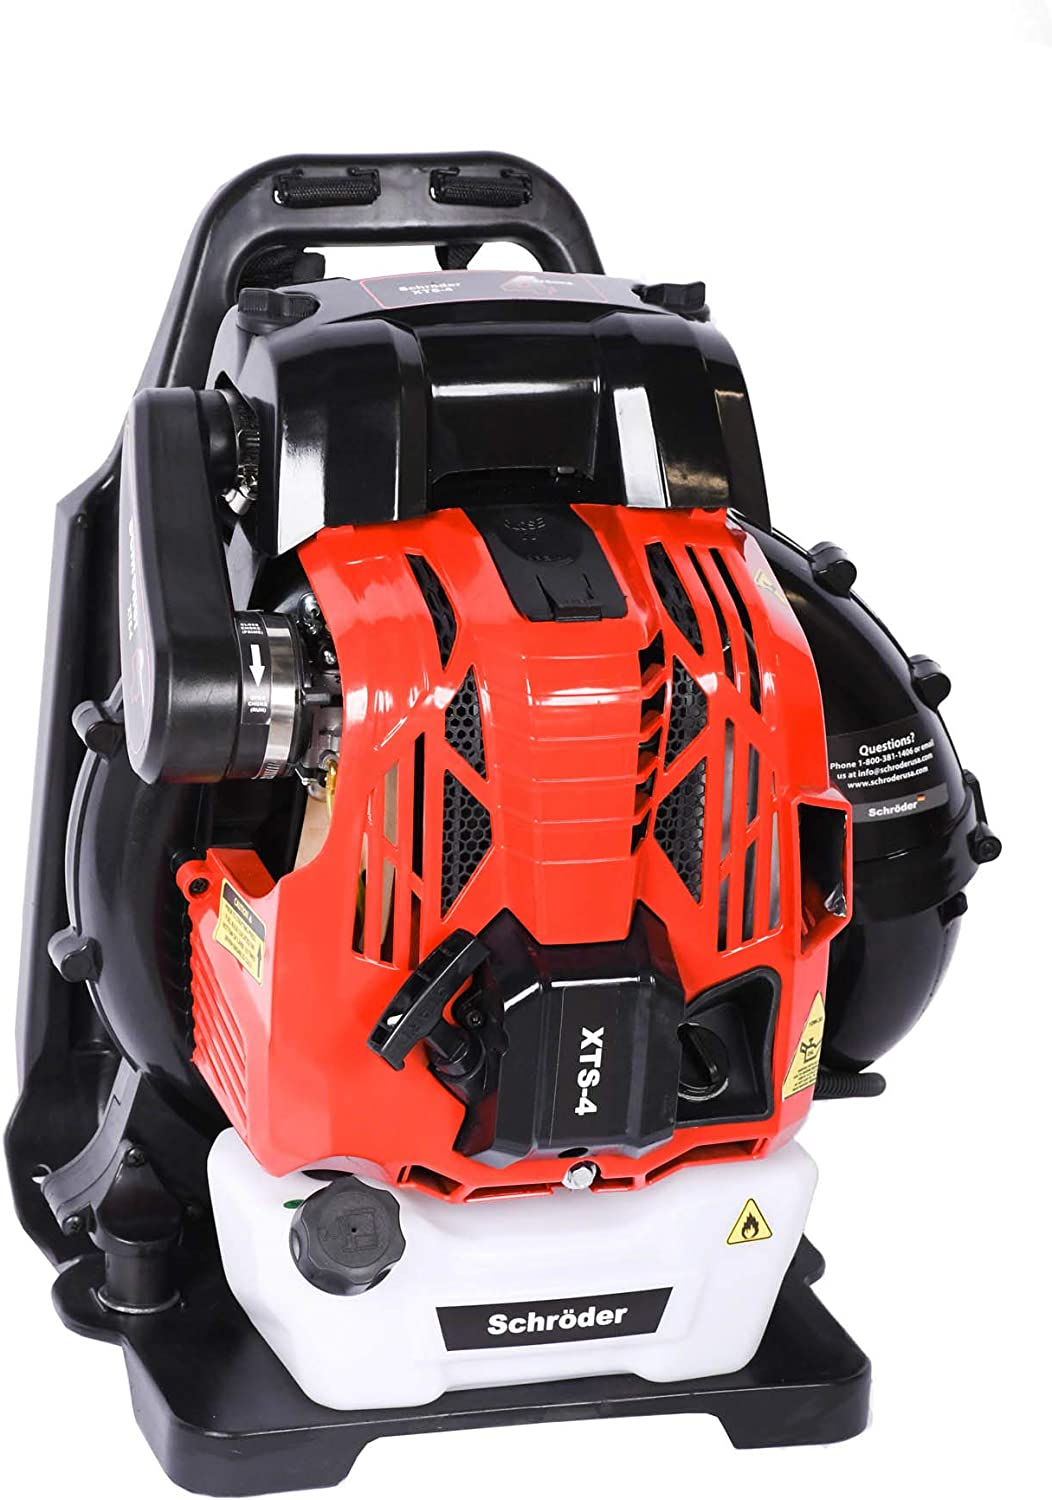 Schröder Backpack 4-Stoke Leaf Blower Model: XTS-4 80cc 865 CFM 220 MPH